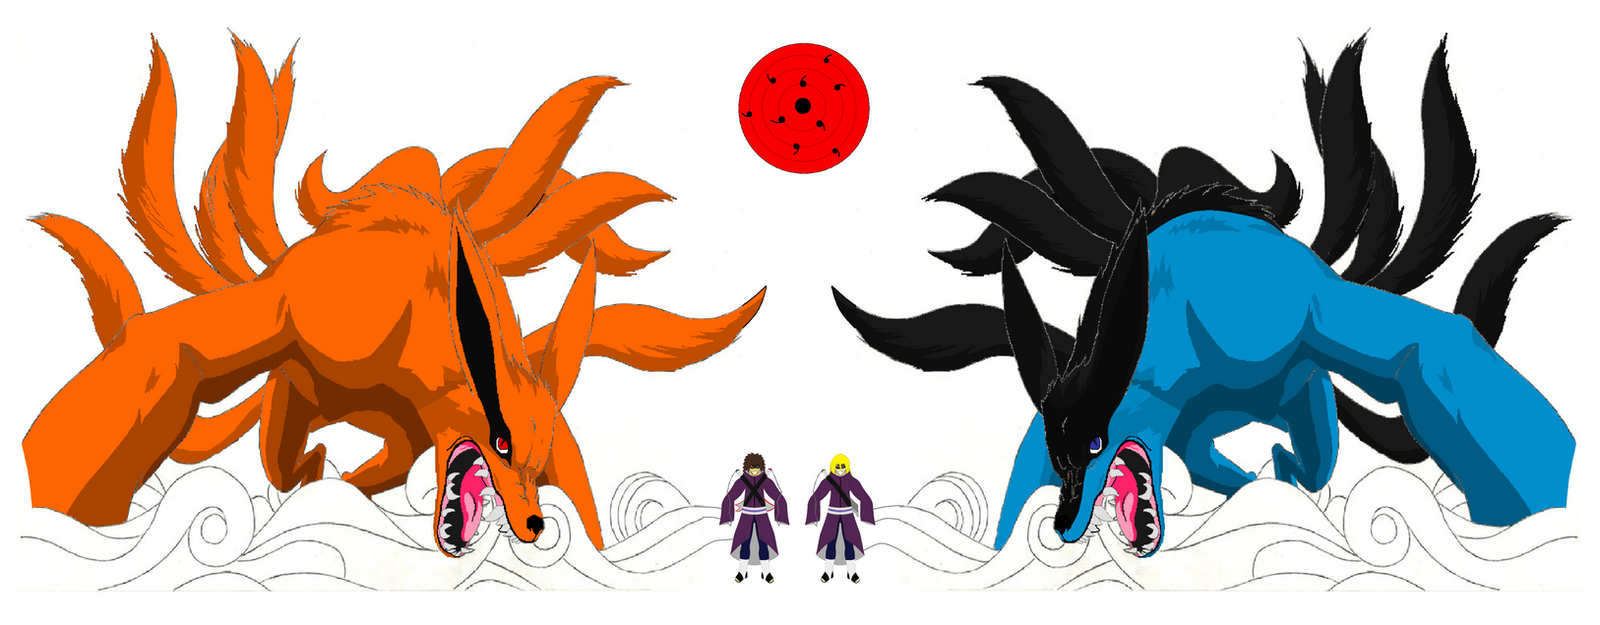 Briar and Orange Tailed Beasts by BostonFanBryer on DeviantArt